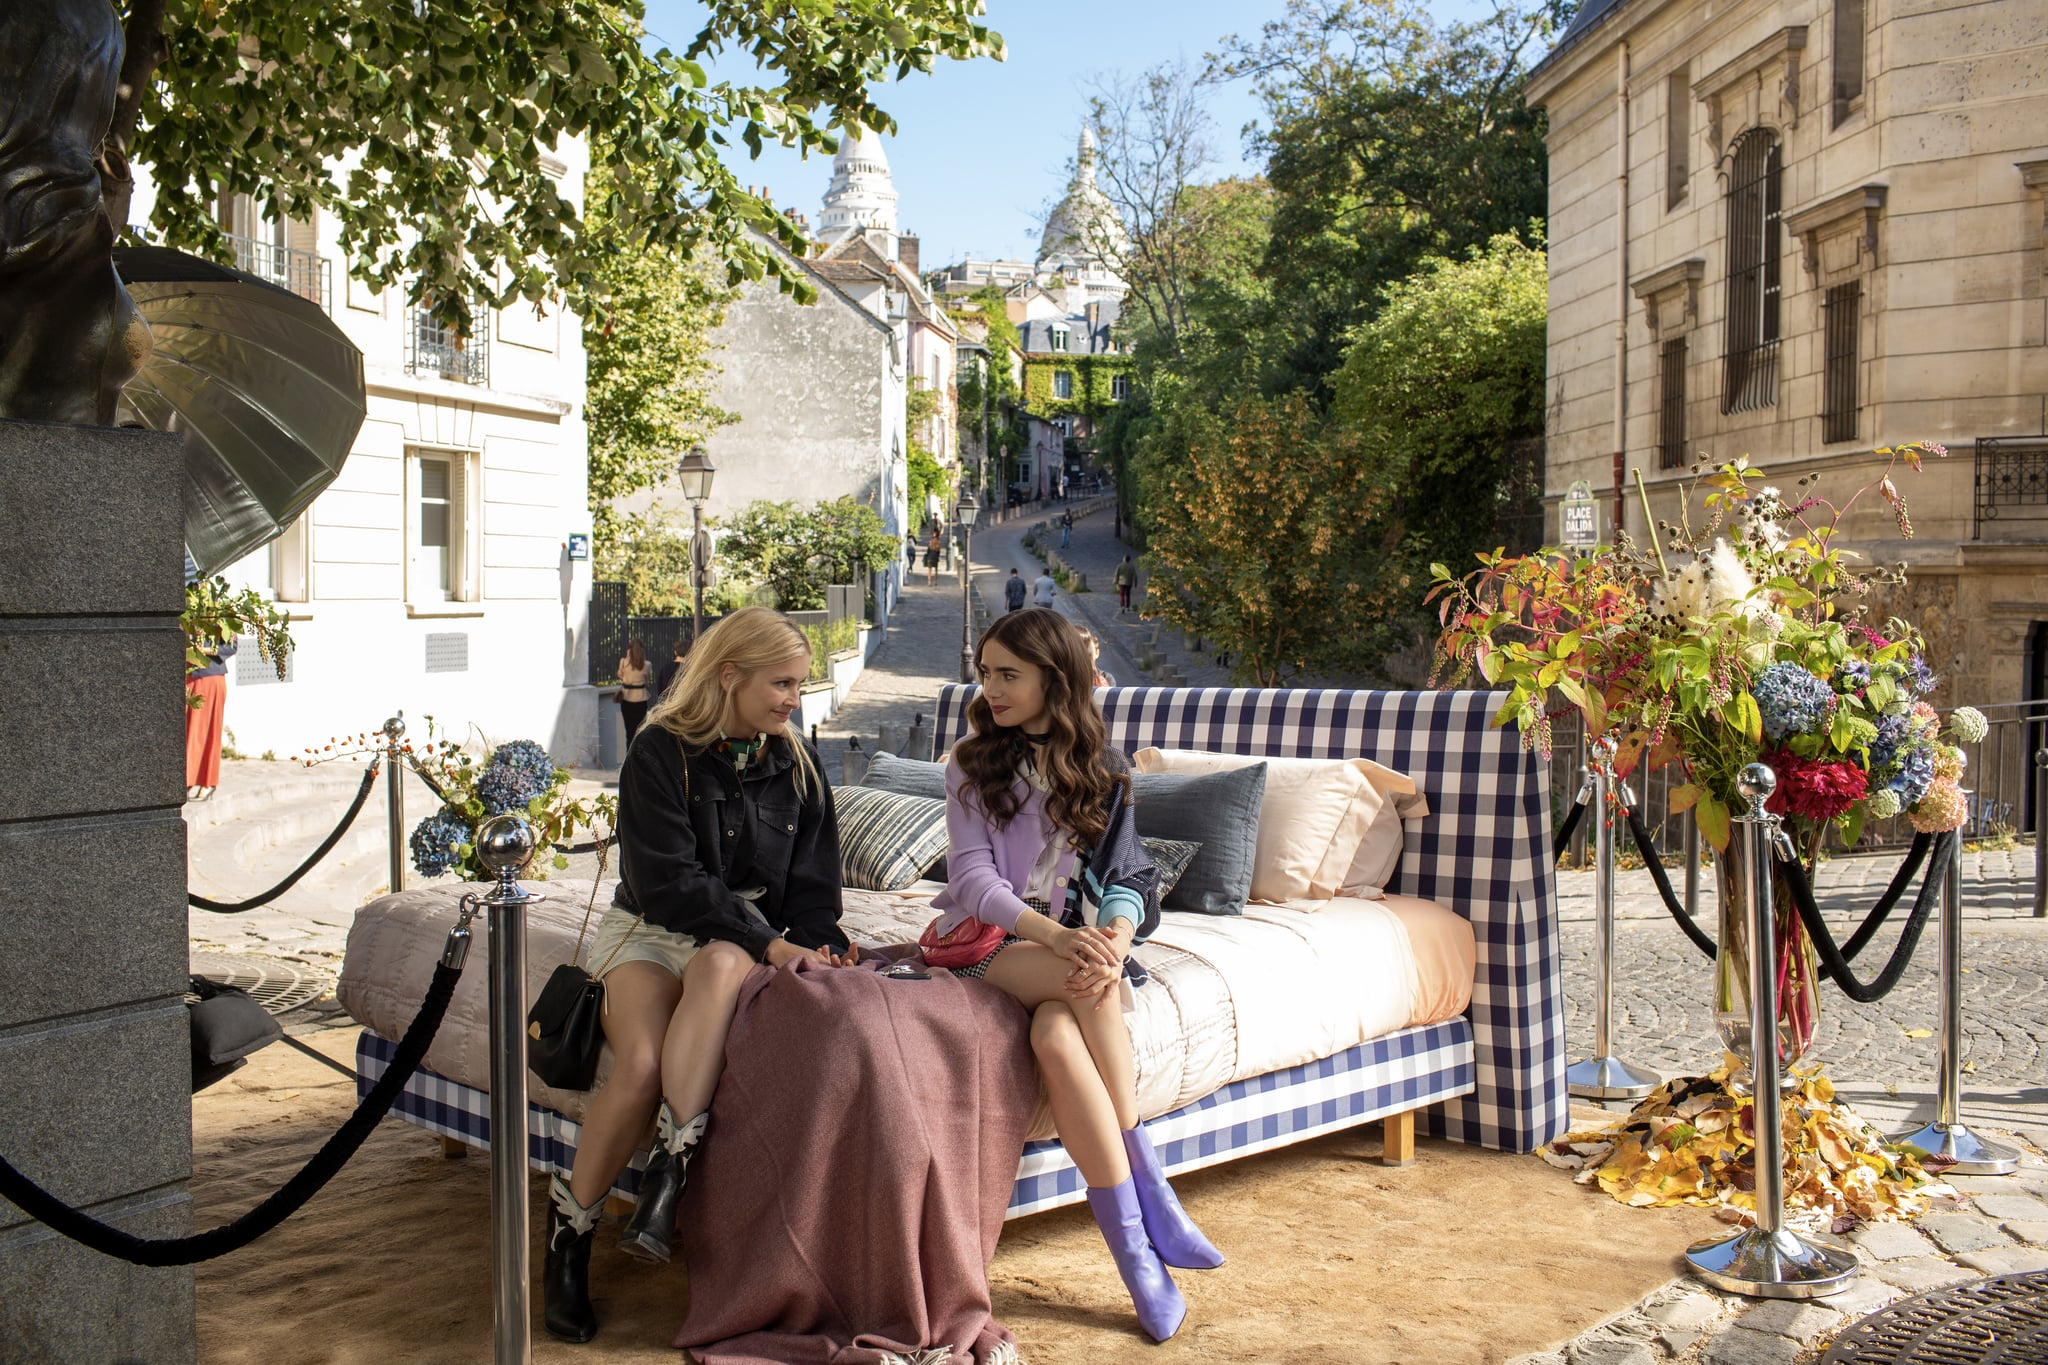 EMILY IN PARIS (L to R) CAMILLE RAZAT as CAMILLE and LILY COLLINS as EMILY in episode 105 of EMILY IN PARIS Cr. CAROLE BETHUEL / NETFLIX 2020